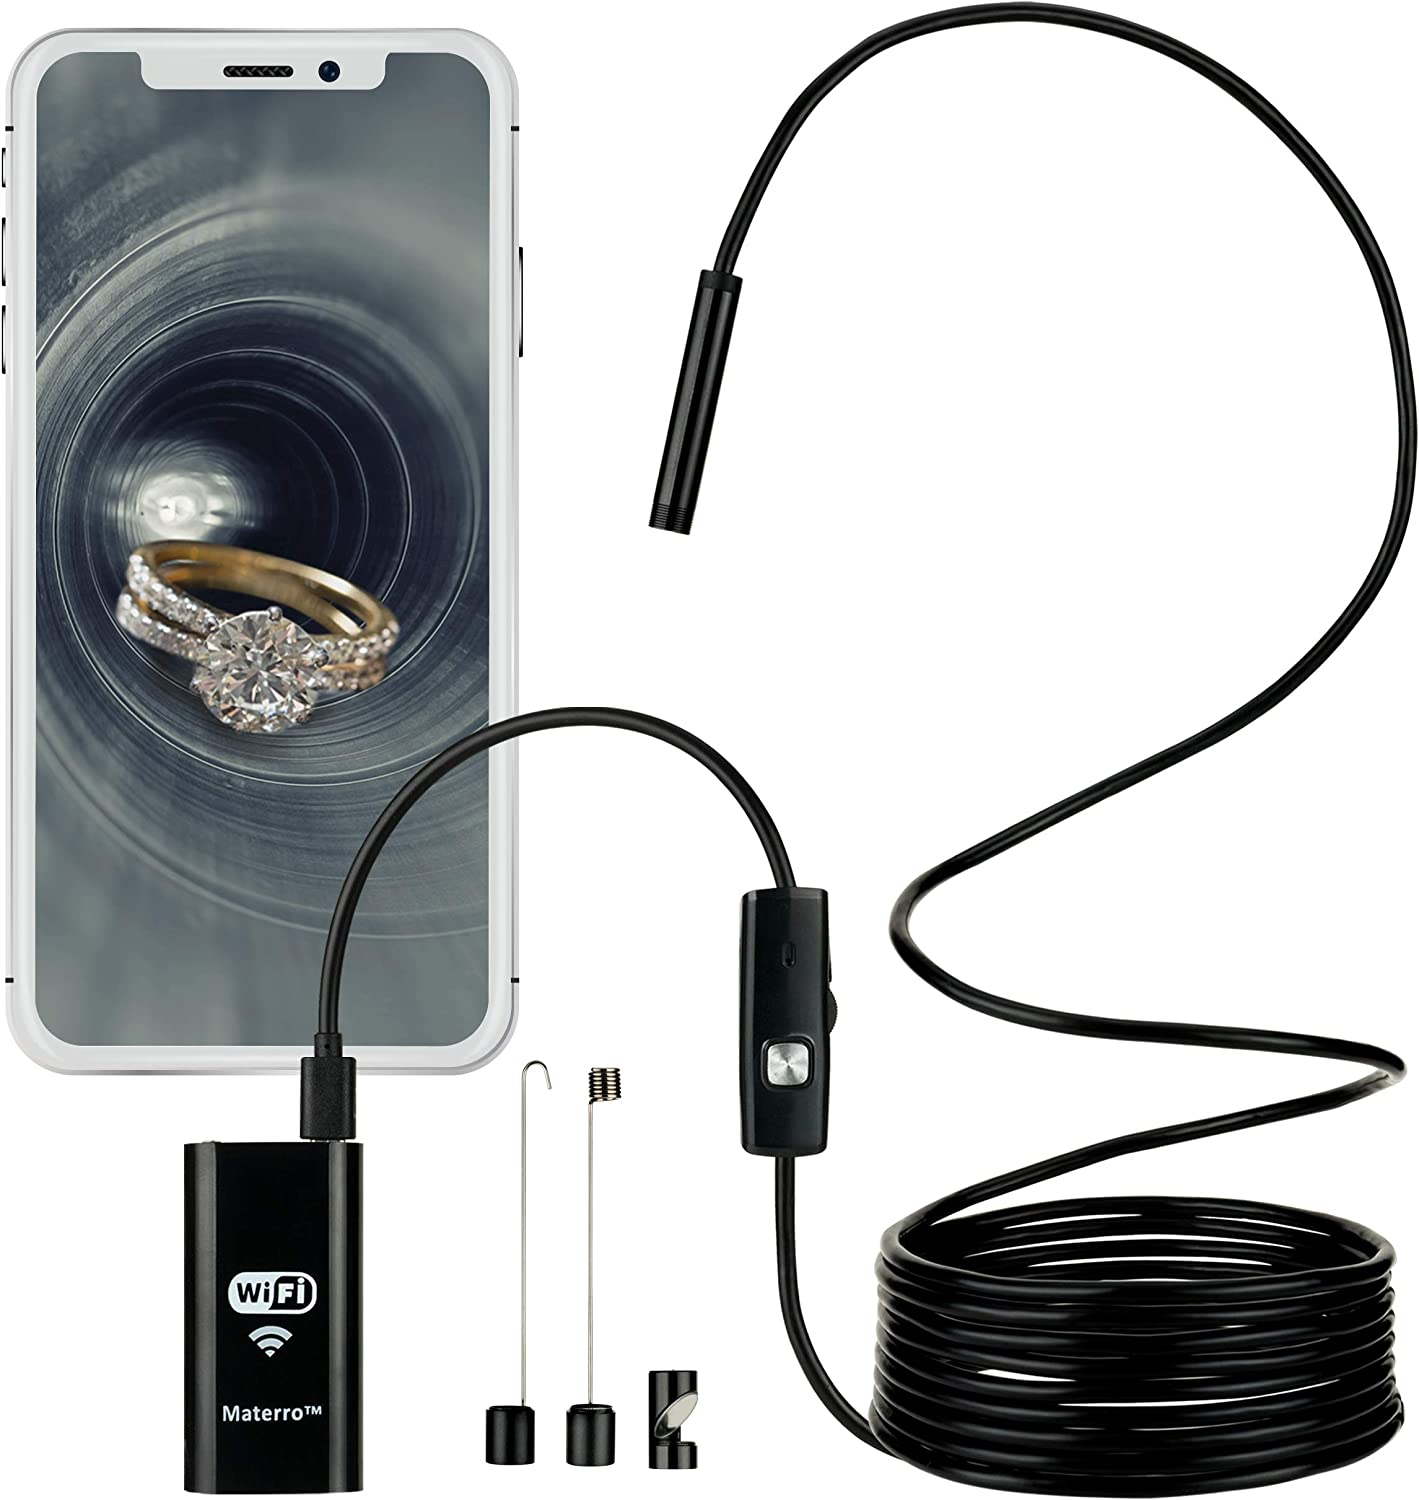 Smartphone Endoscope/Camera on a Wire, WiFi, 2.0 MP Resolution, Micro USB Borescope Waterproof for Android (2.3 or Later) and iPhone (6.0 or Later)